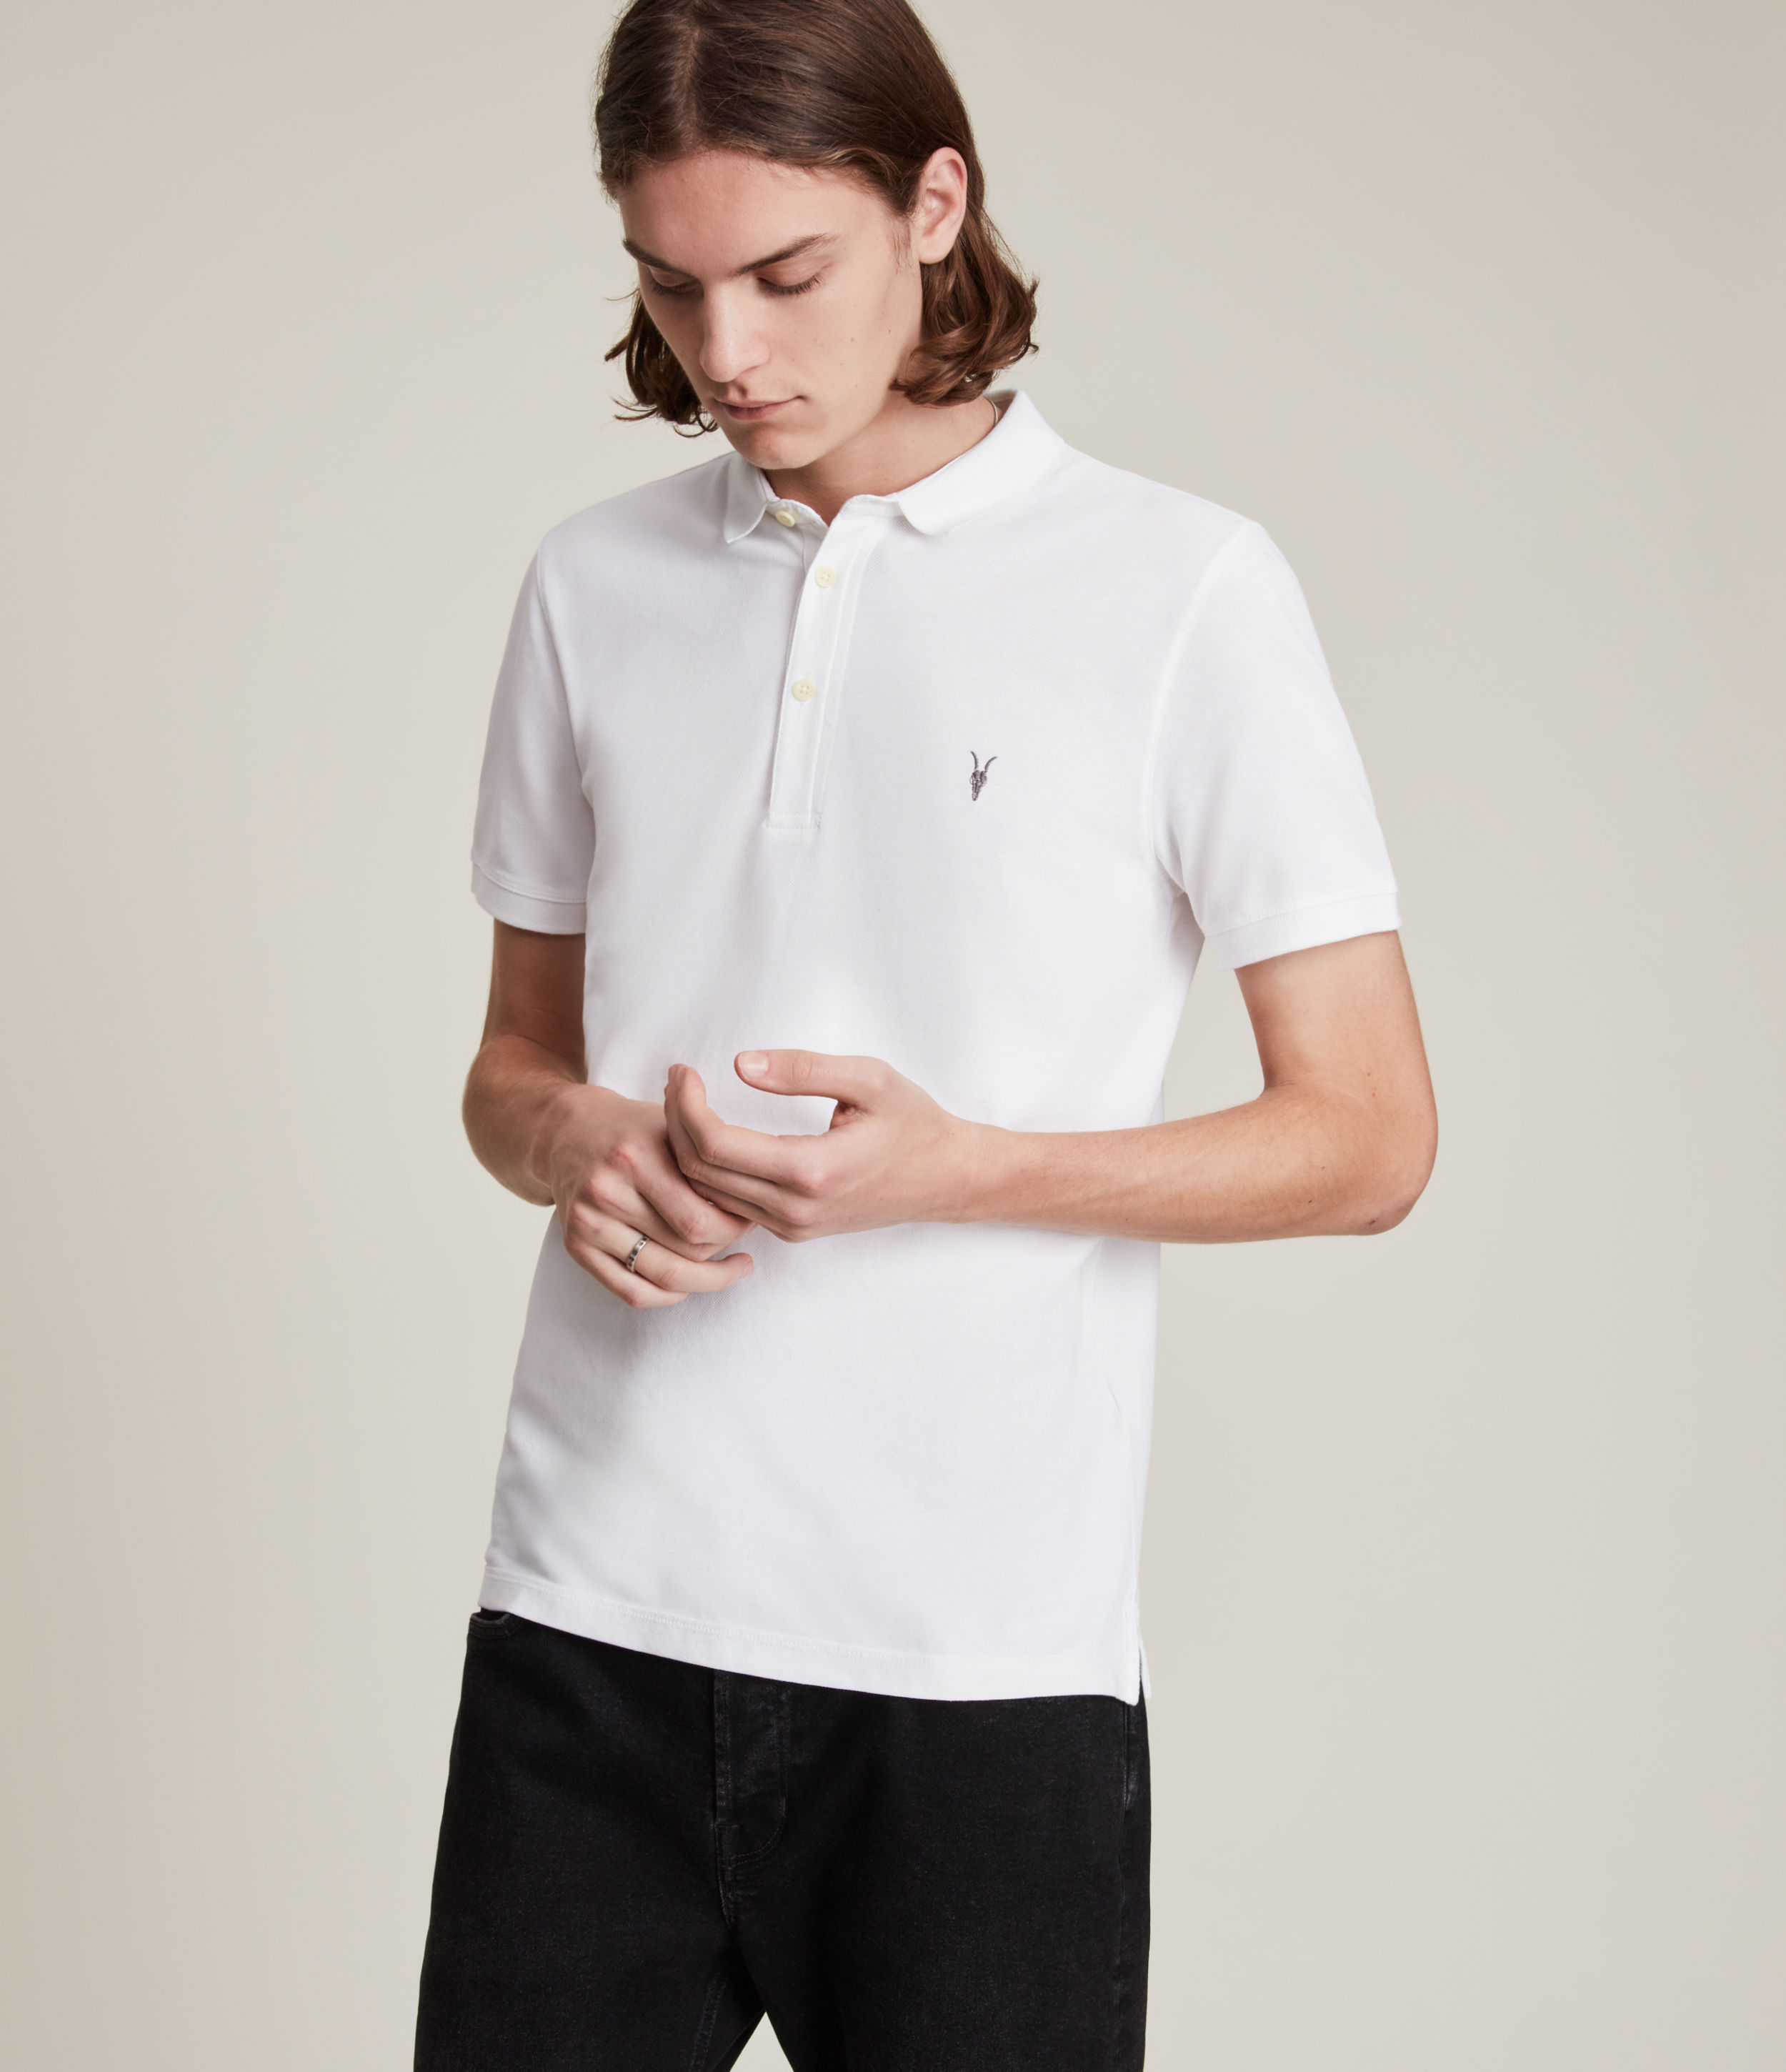 AllSaints Men's Cotton Slim Fit Reform Short Sleeve Polo Shirt, White, Size: XXL